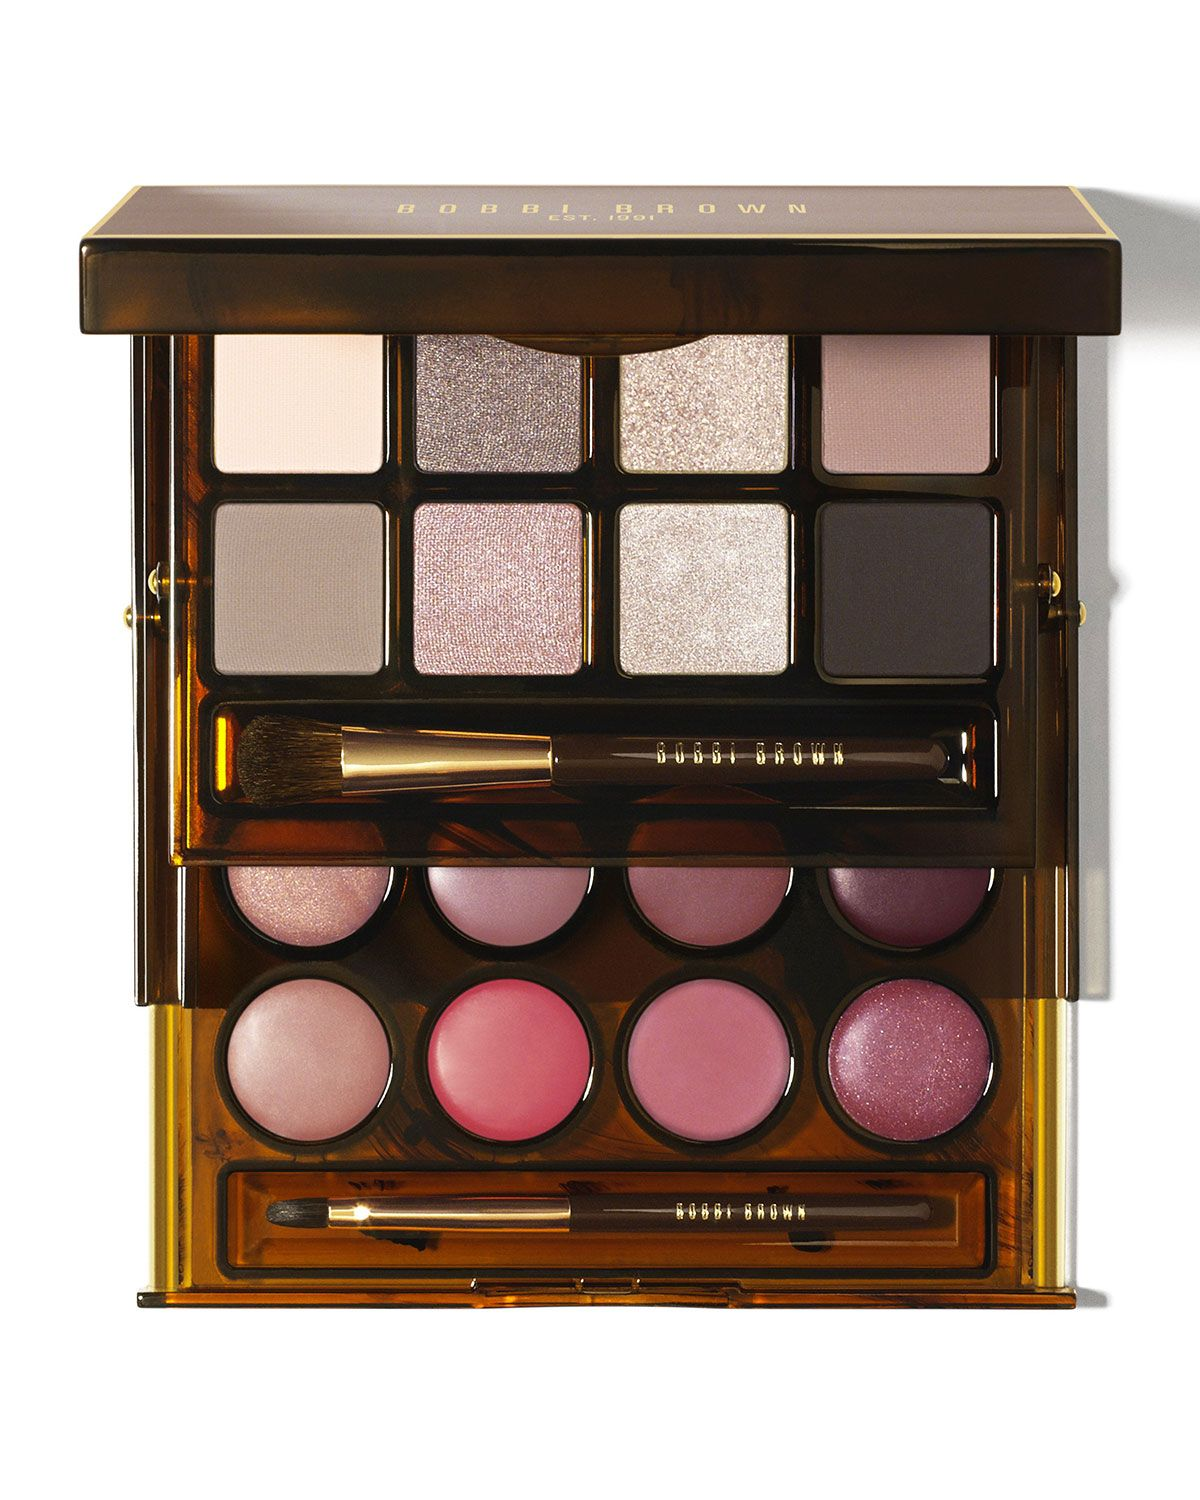 Bobbi Brown Limited Edition Deluxe Lip & Eye Palette http://rstyle.me/~2J0Bh